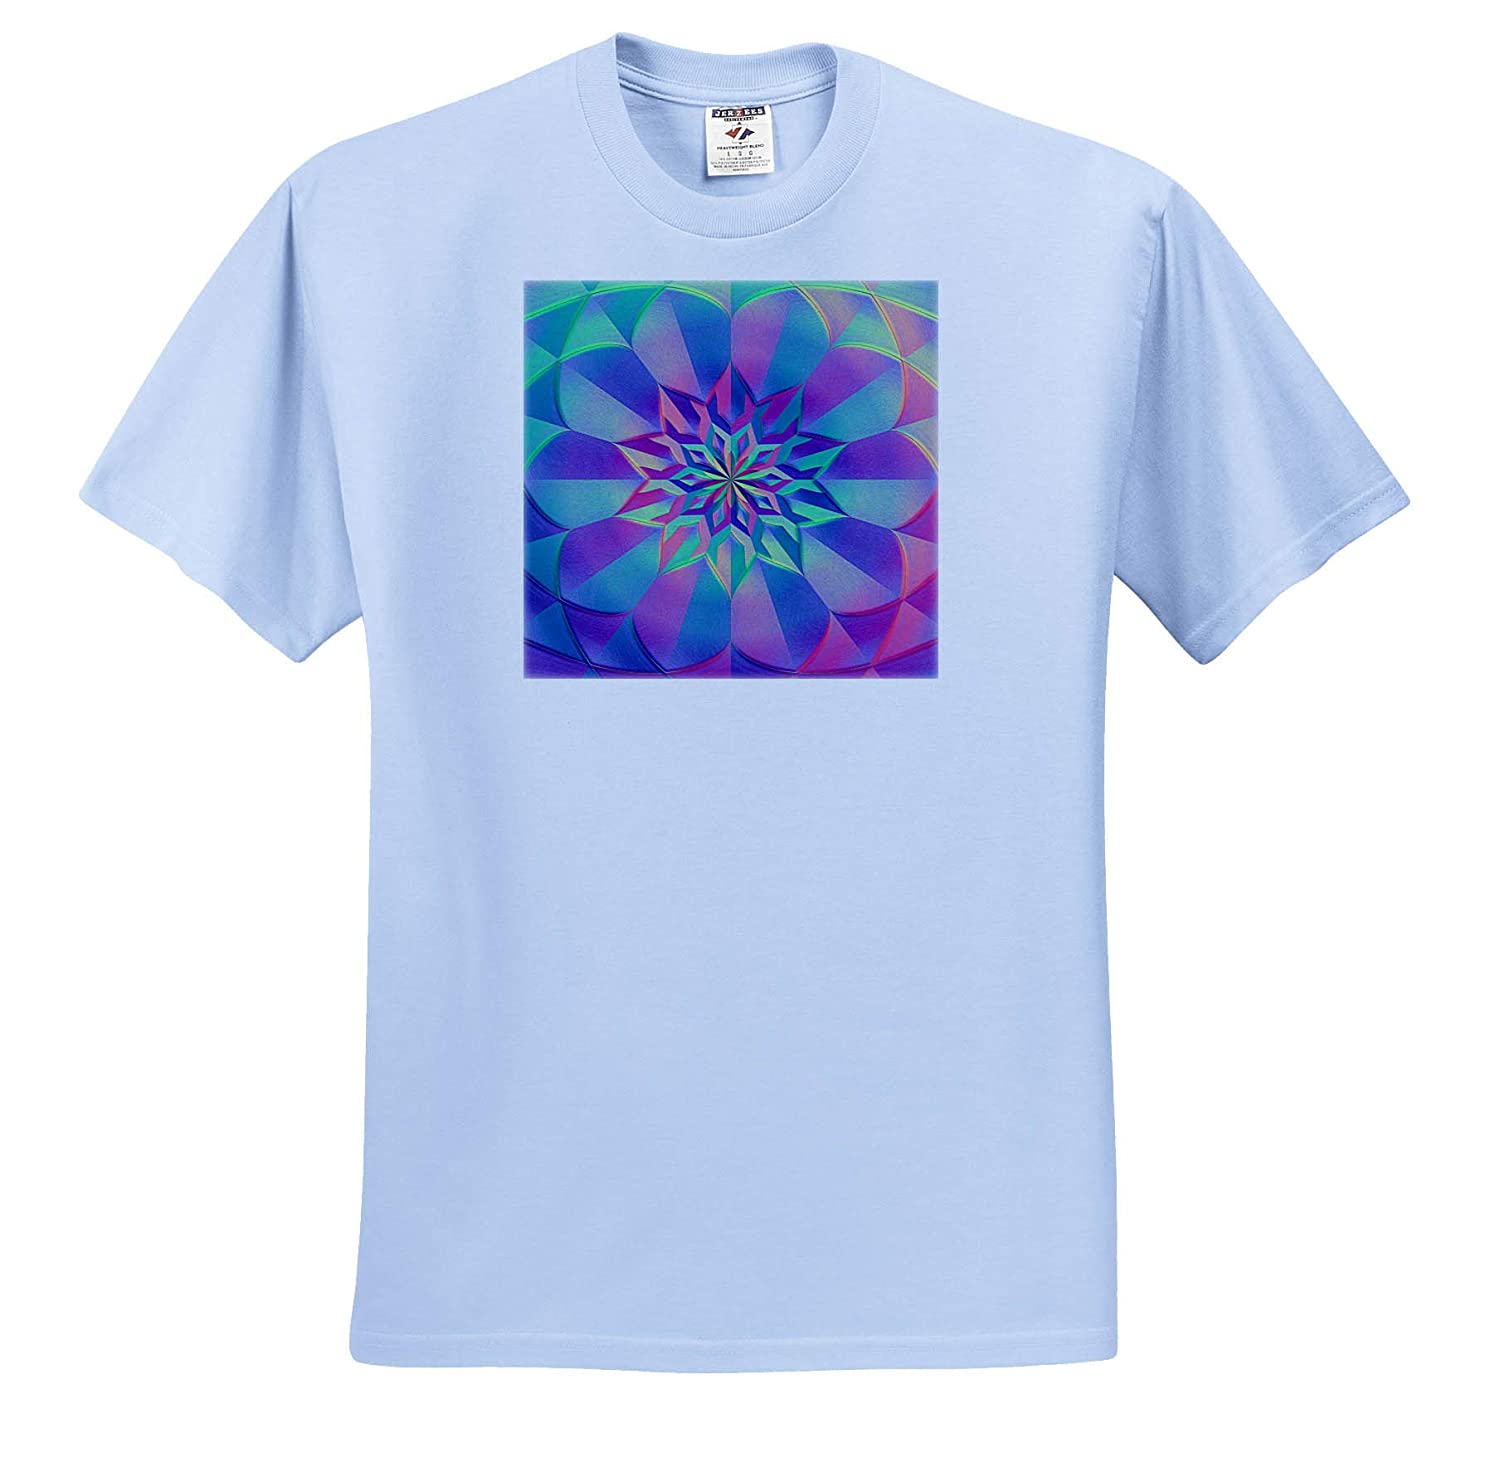 3dRose Andrea Haase Graphic Art T-Shirts Abstract Digital Art in Pastel Colors